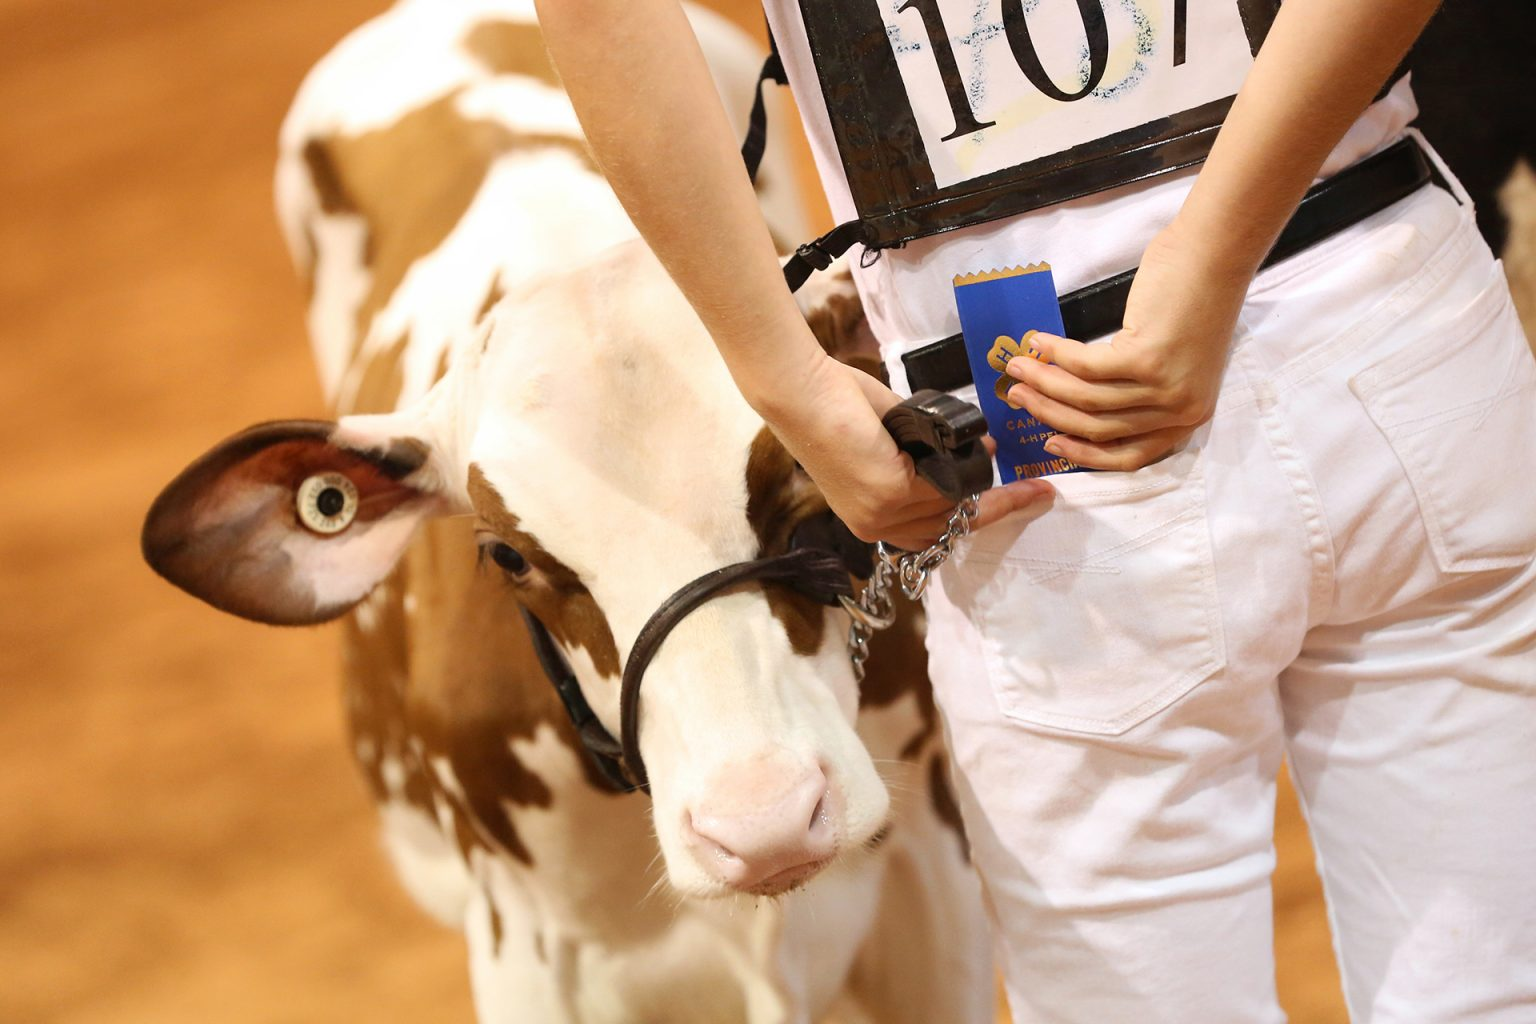 Old Home Week Dairy Cattle winning ribbon